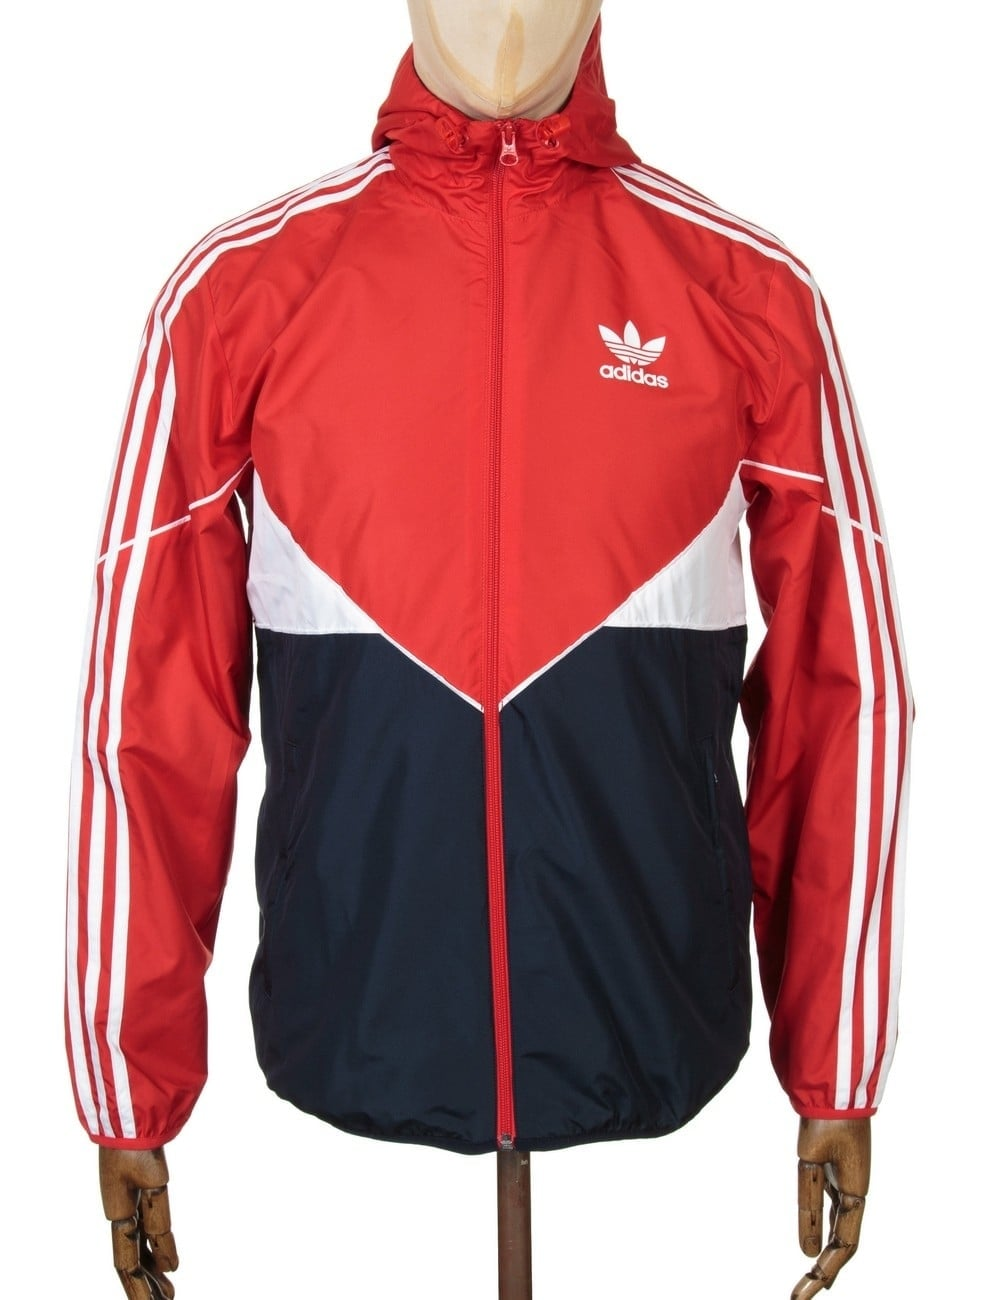 980f8f4ab Adidas Originals Colorado Wind Breaker Jacket - Vivid Red/Legink ...